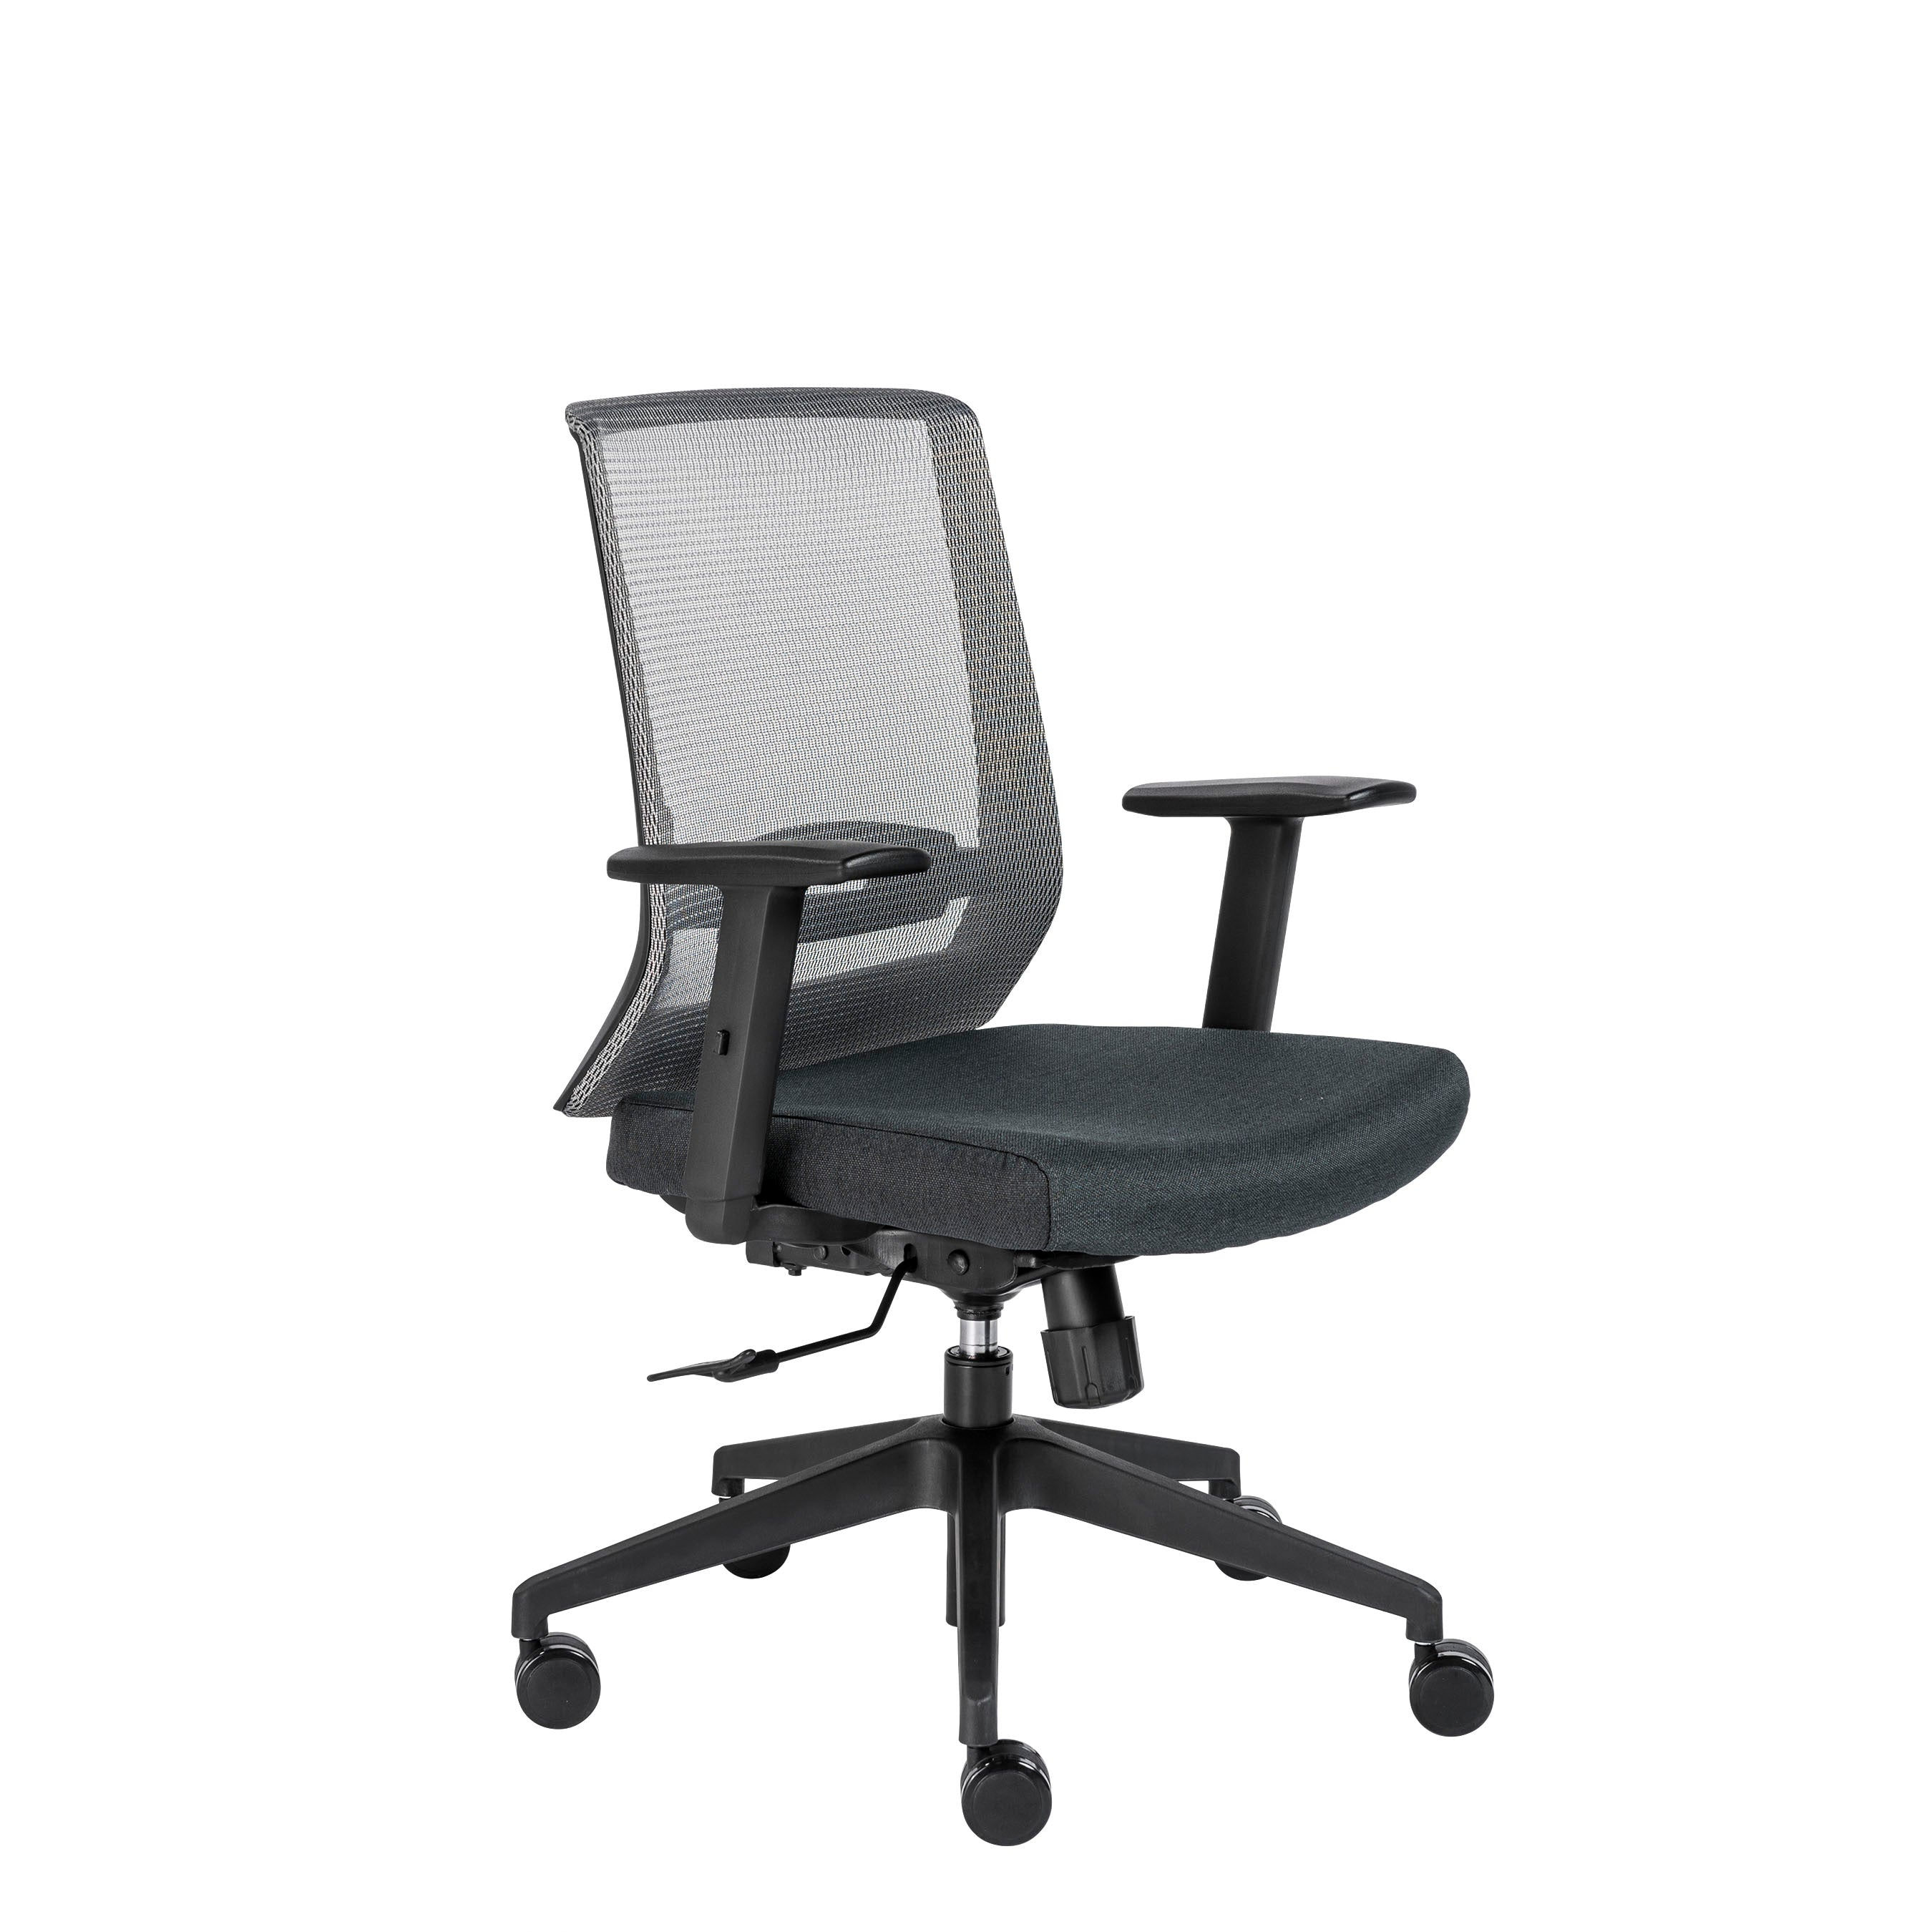 Traditional Rolling Mesh Office Chair In Gray Black W